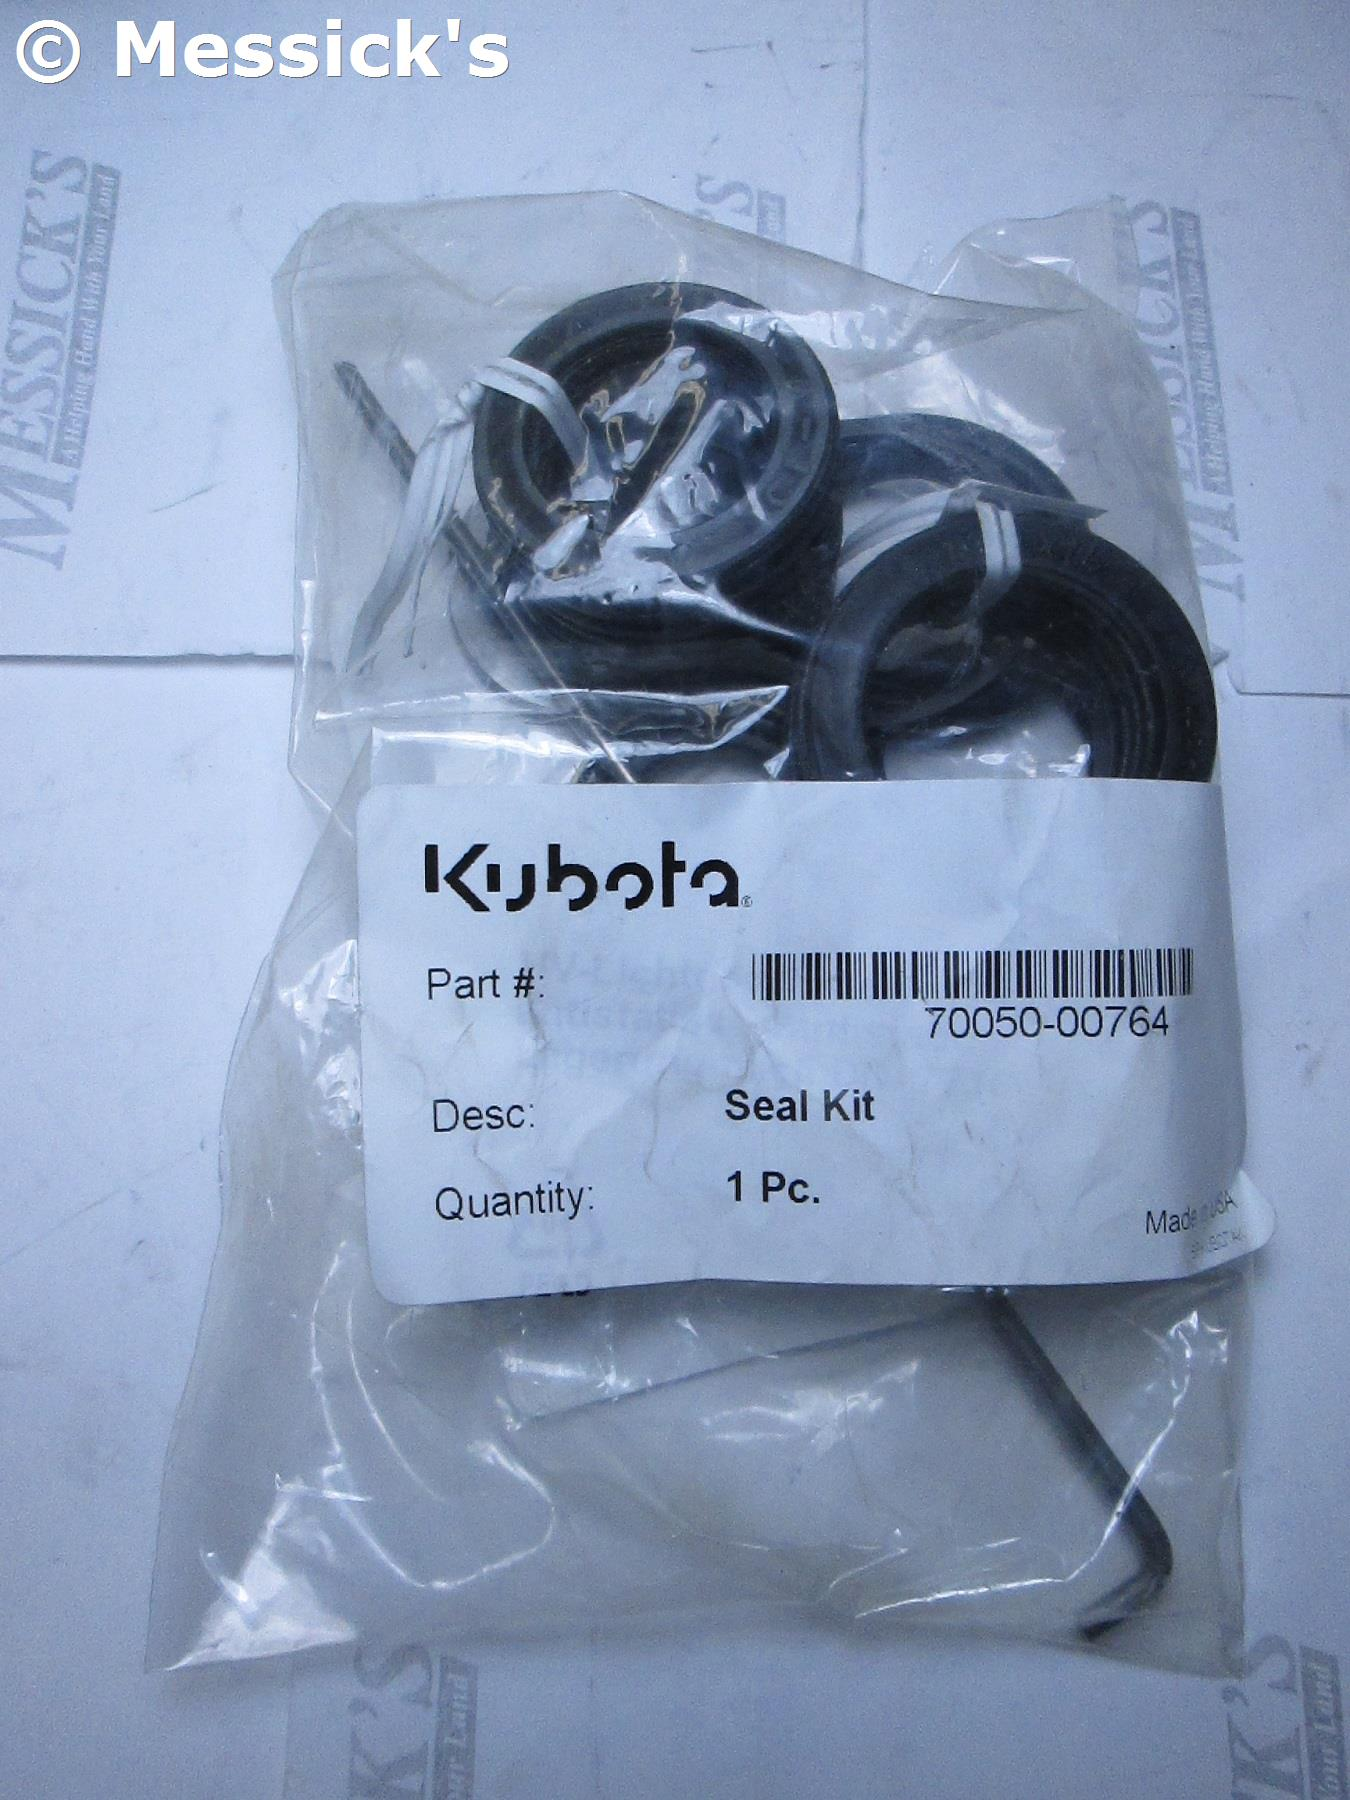 Part Number: 70050-00764